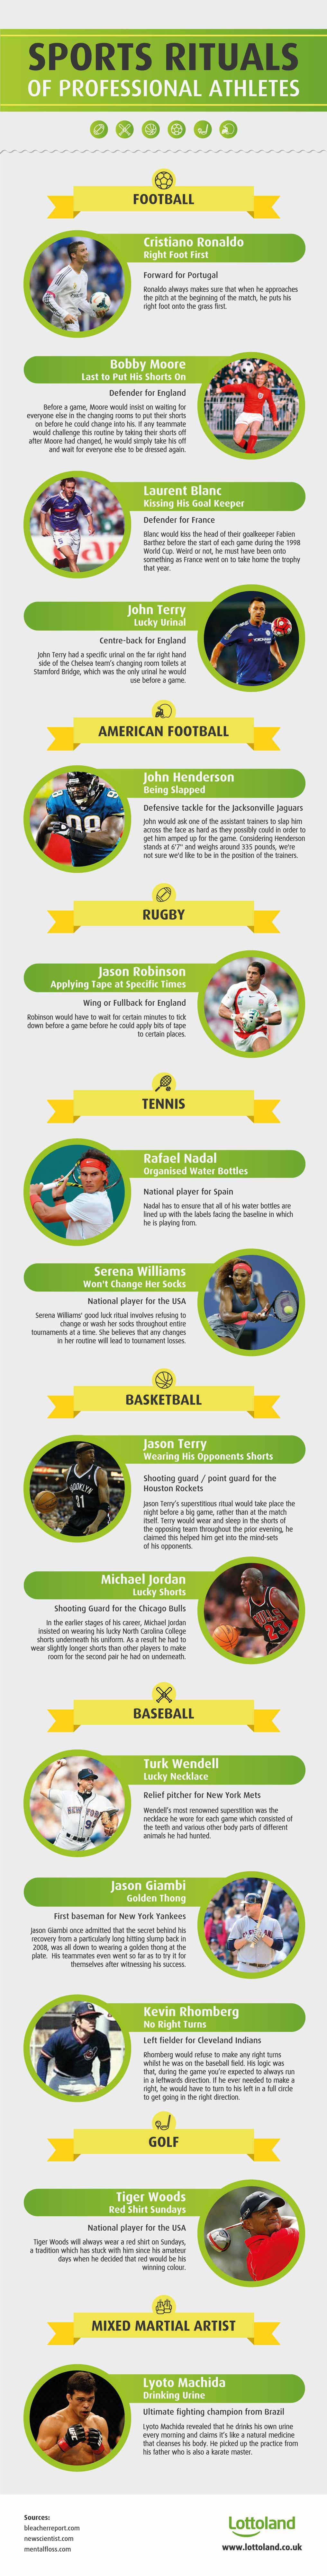 The Most Bizarre Sports Rituals of Professional Athletes